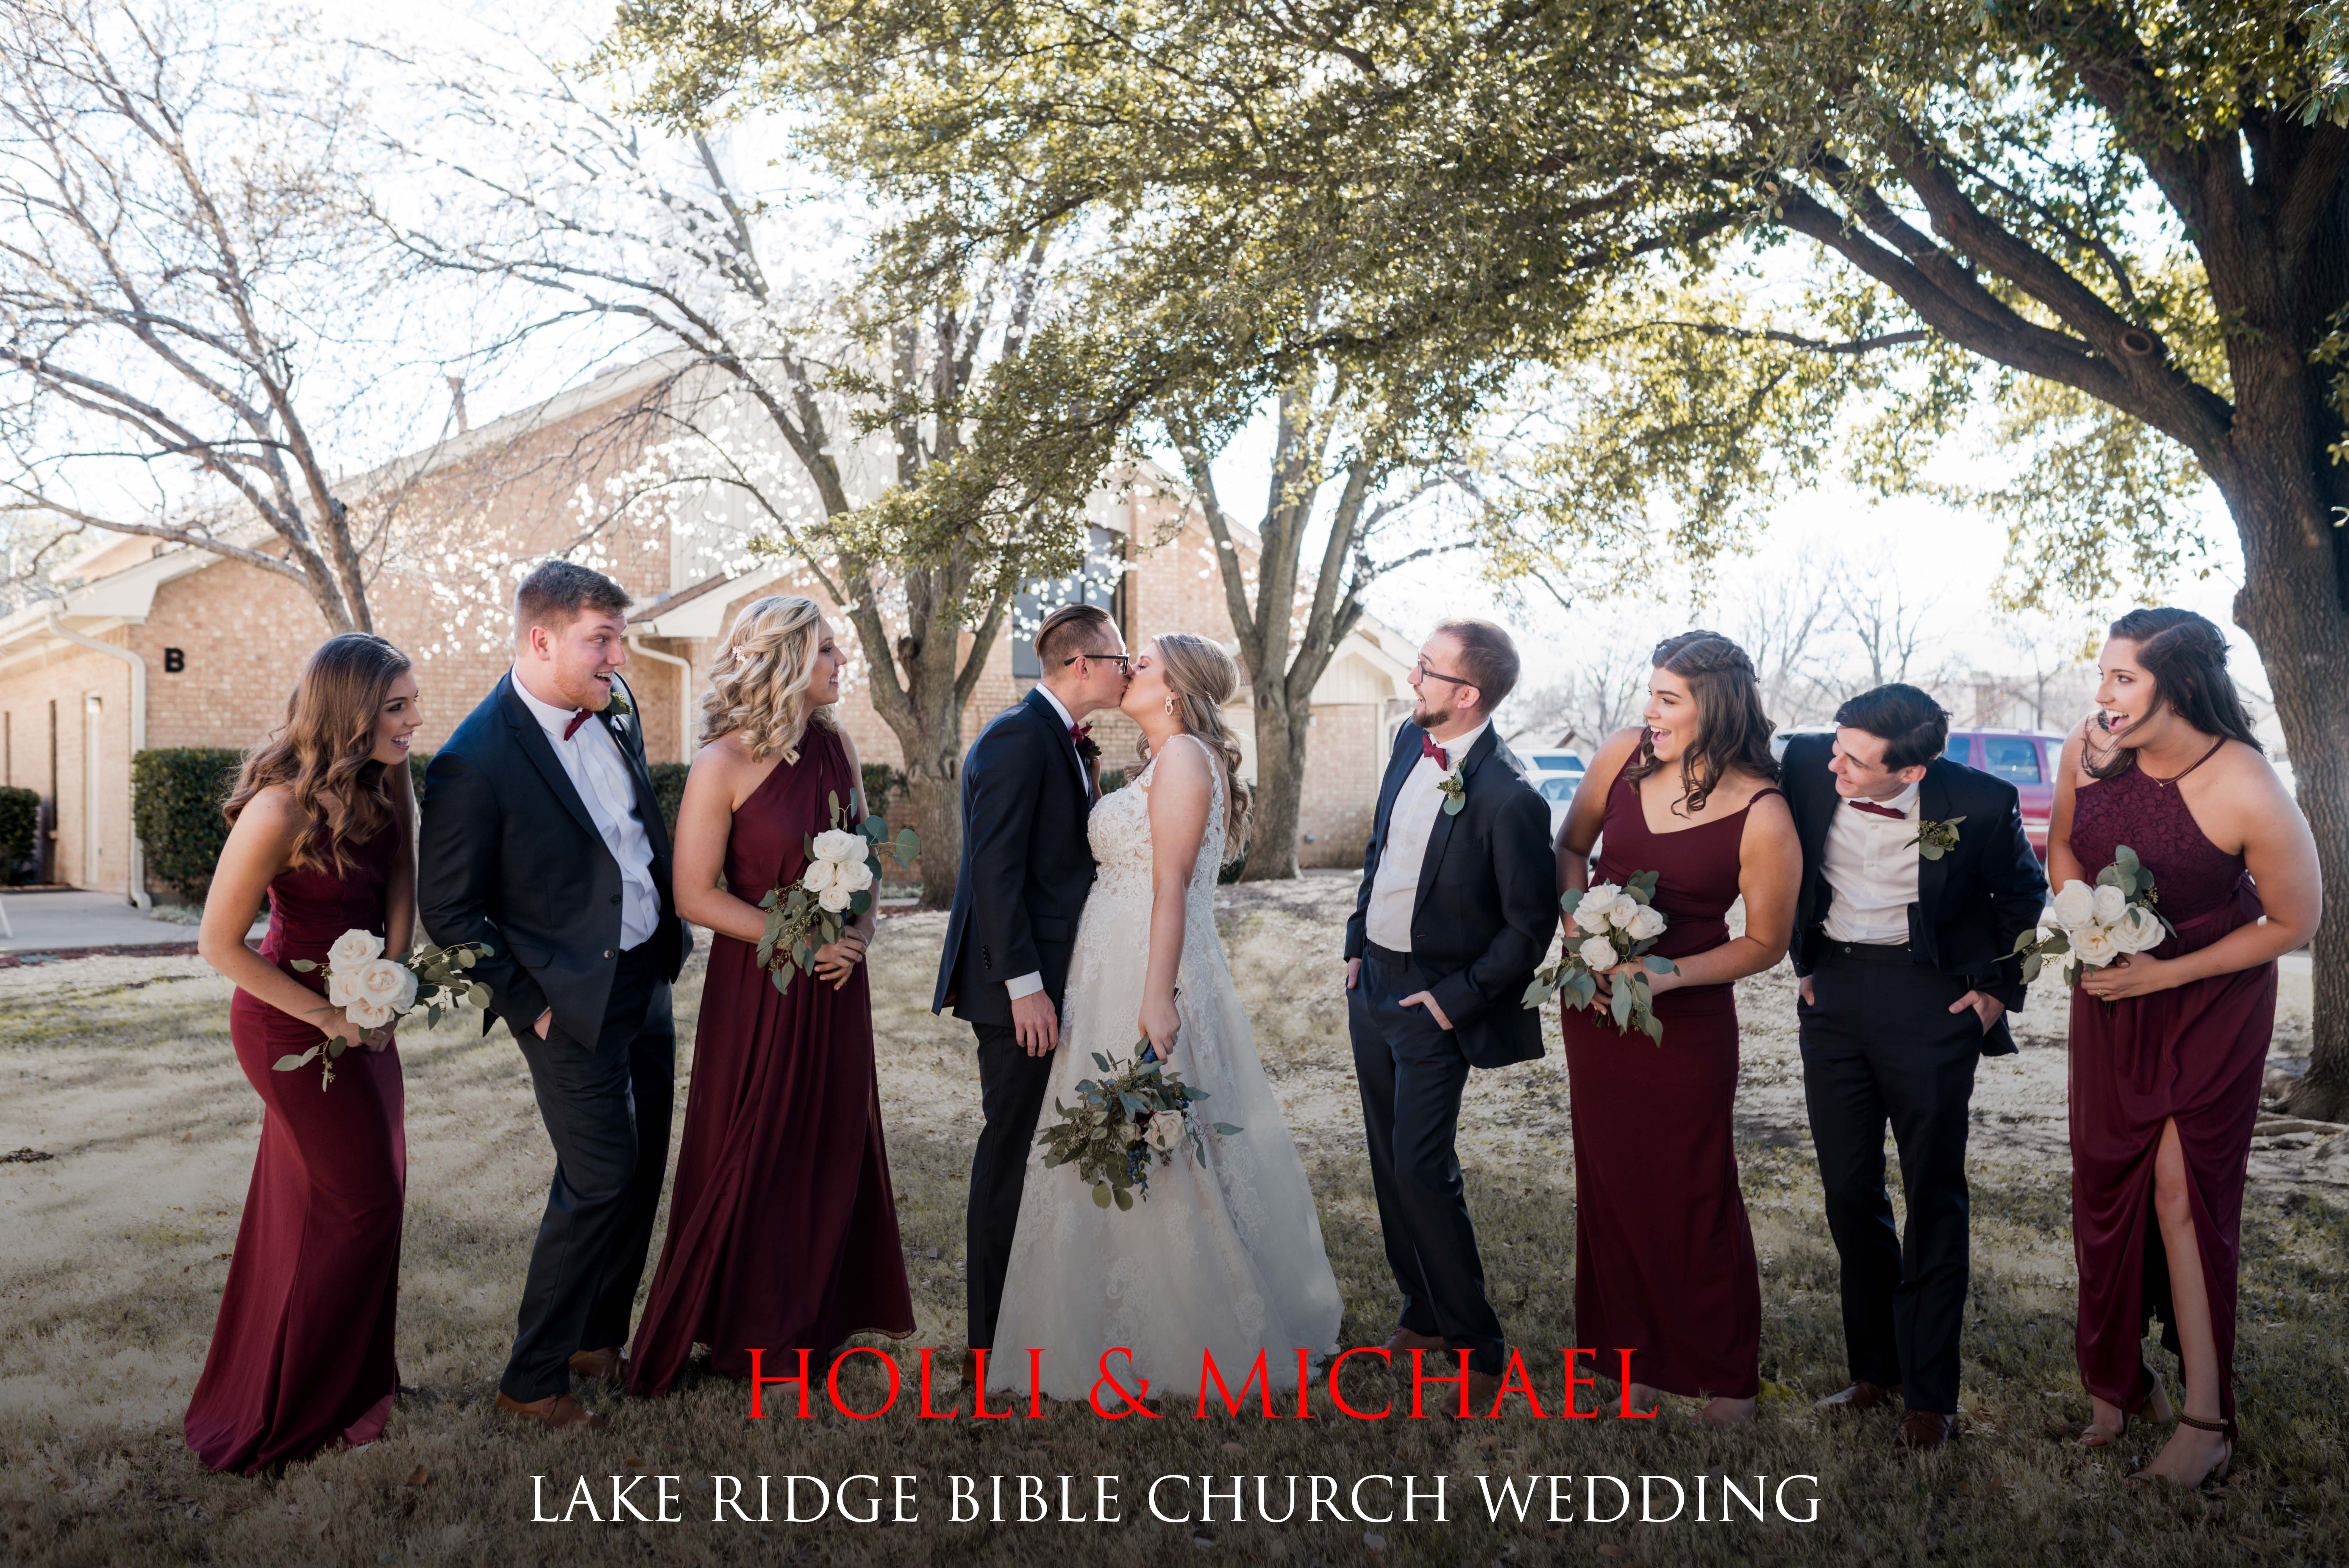 Lake Ridge Bible Church Wedding